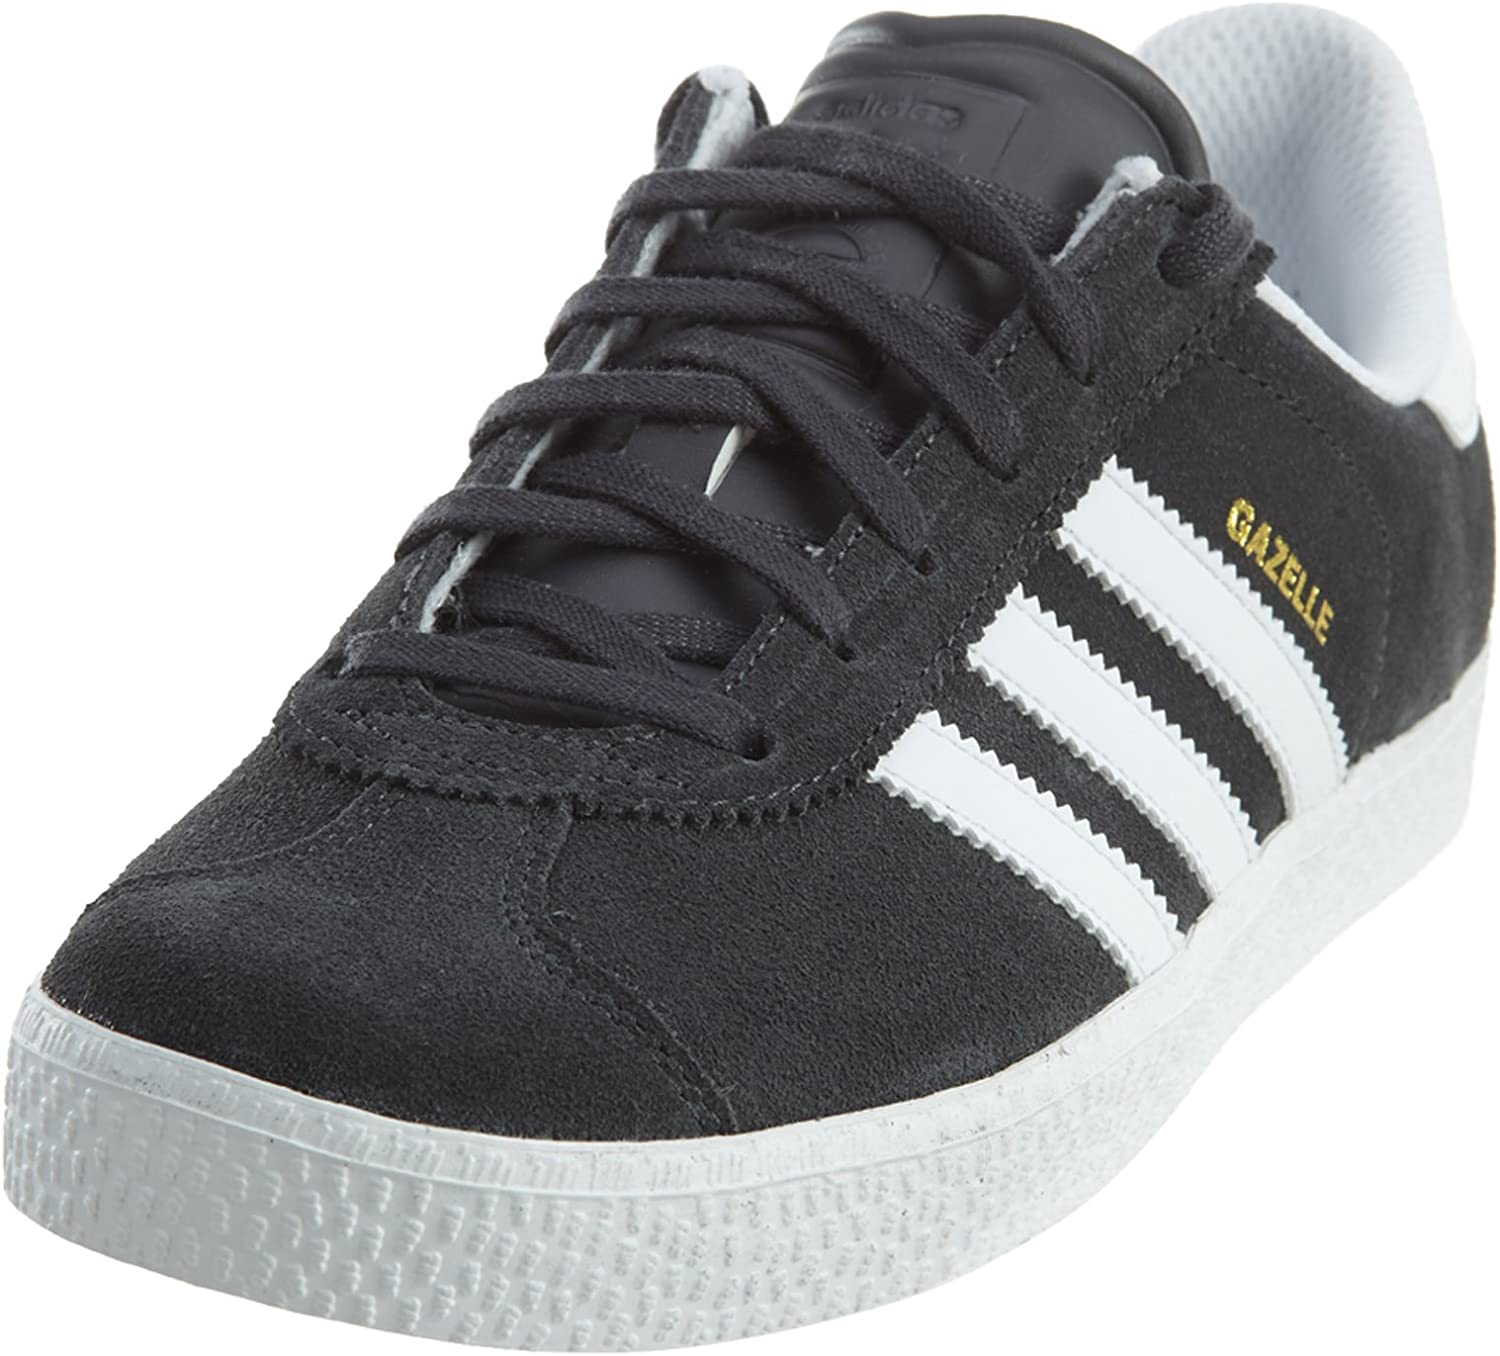 2 M US Little Kid Collegiate Navy//White//White adidas  Boys Gazelle C Sneaker